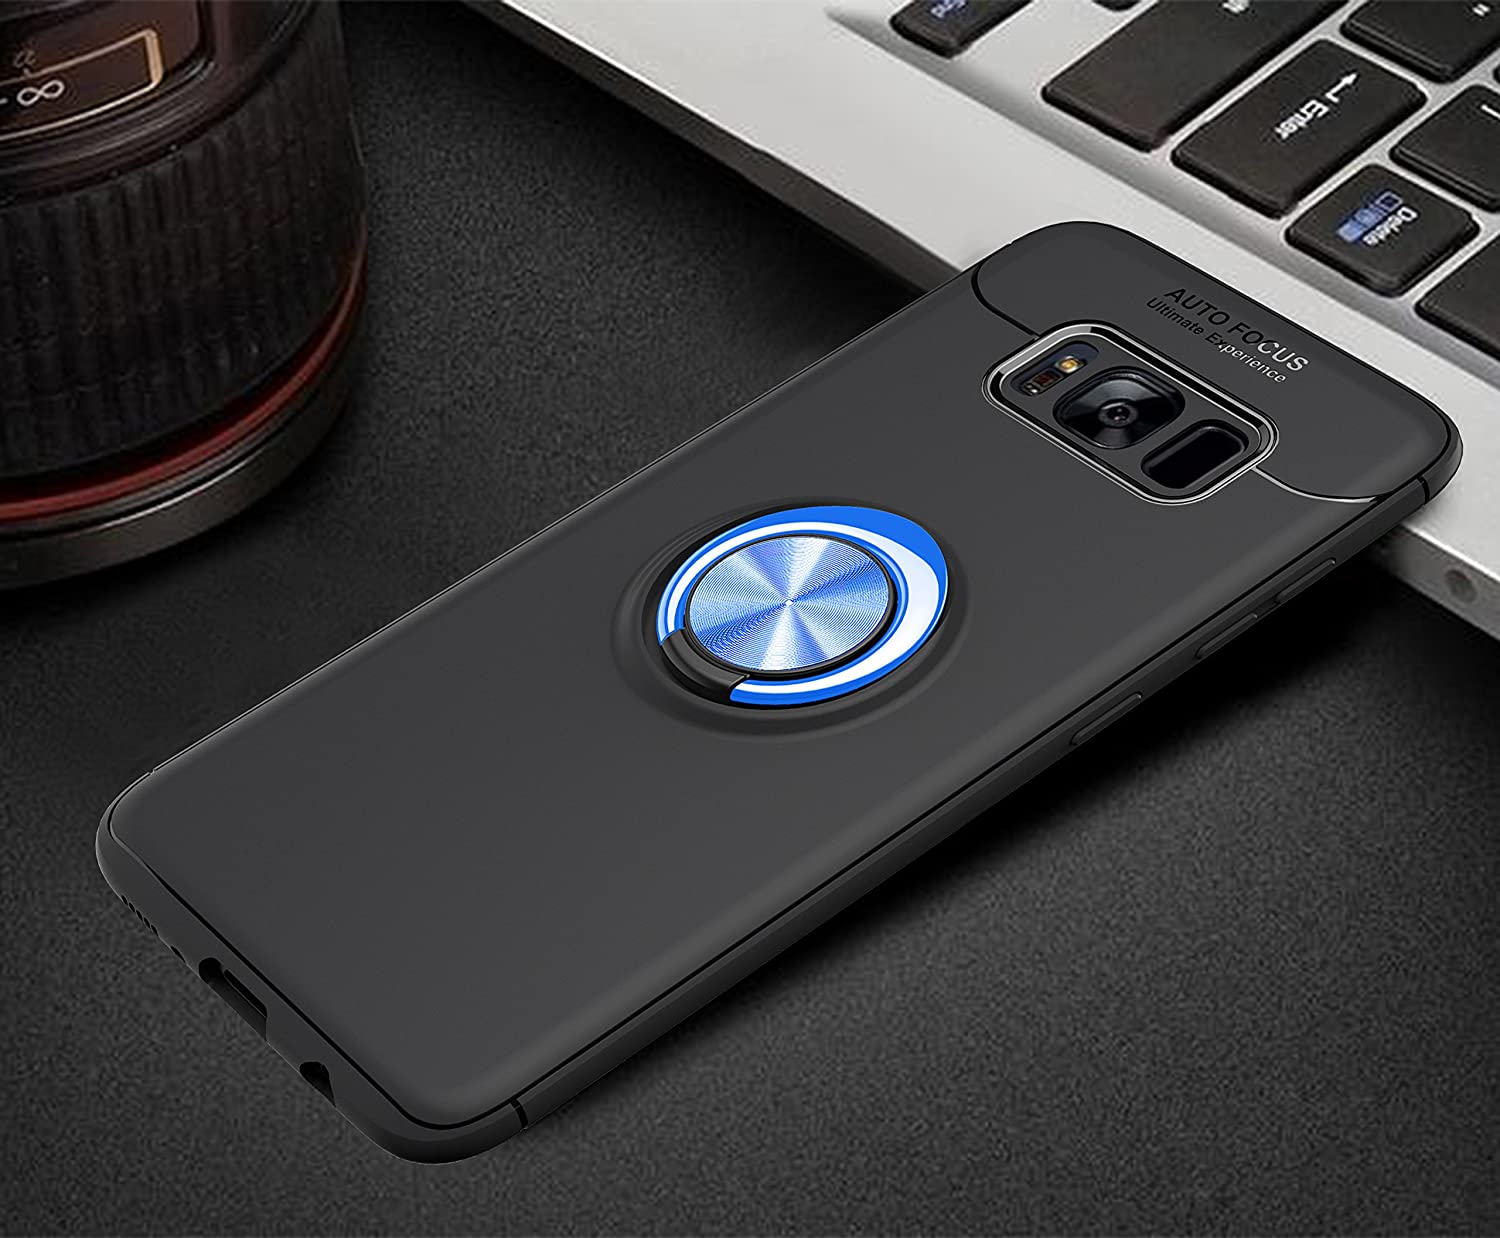 Thin Soft Full Protective 360 Degree Rotating Ring Kickstand Cover with Magnetic Car Mount for Galaxy S8 Plus Avalri Samsung Galaxy S8 Plus Case Black-Blue